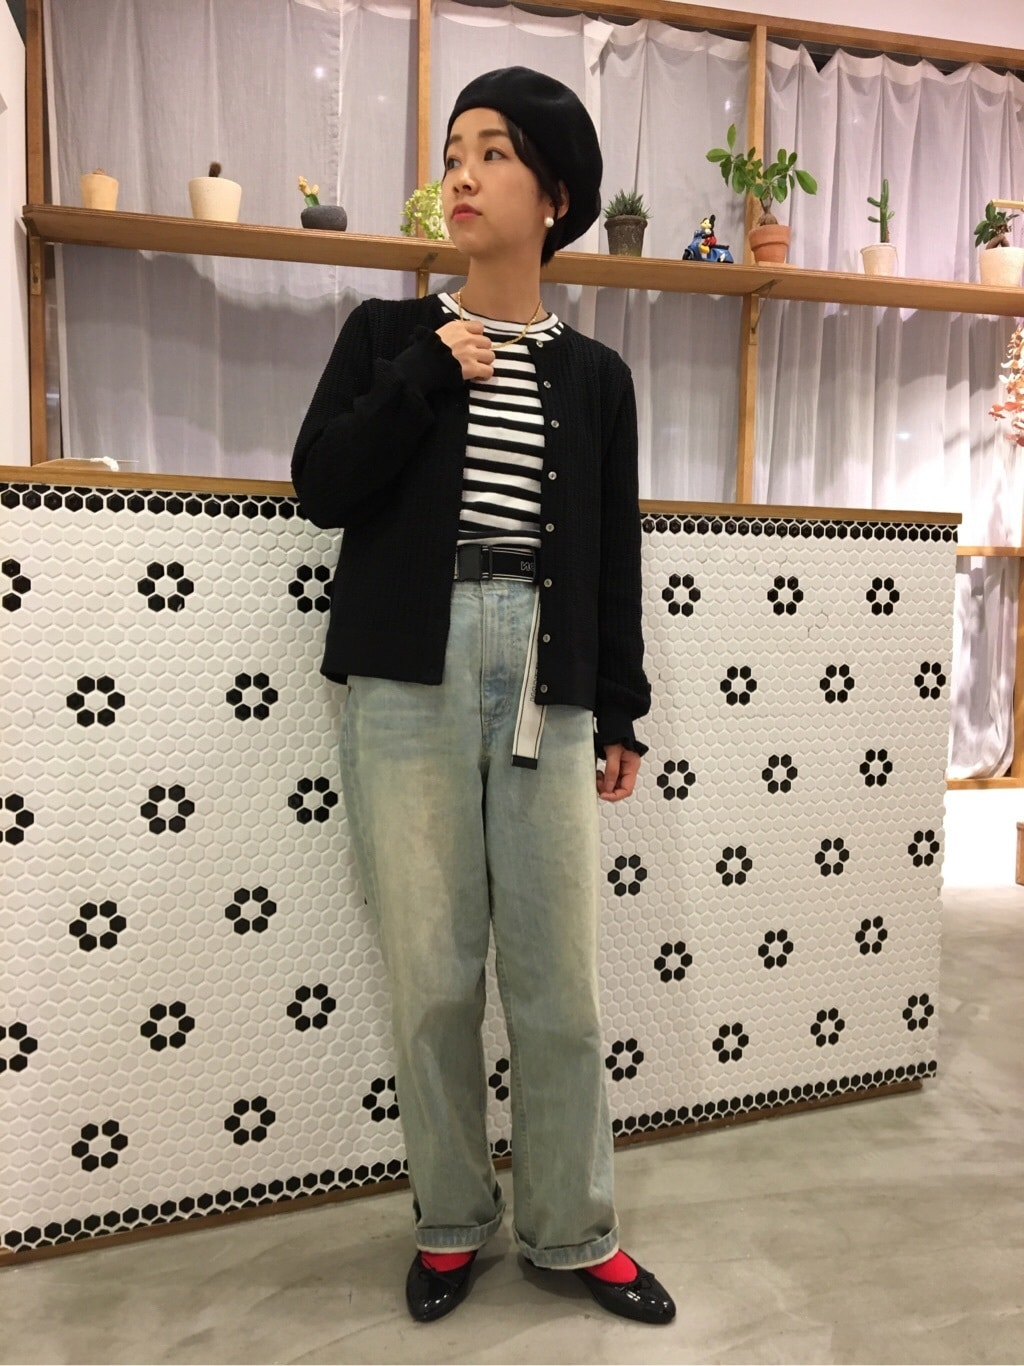 Dot and Stripes CHILD WOMAN ラフォーレ原宿 身長:153cm 2019.07.22